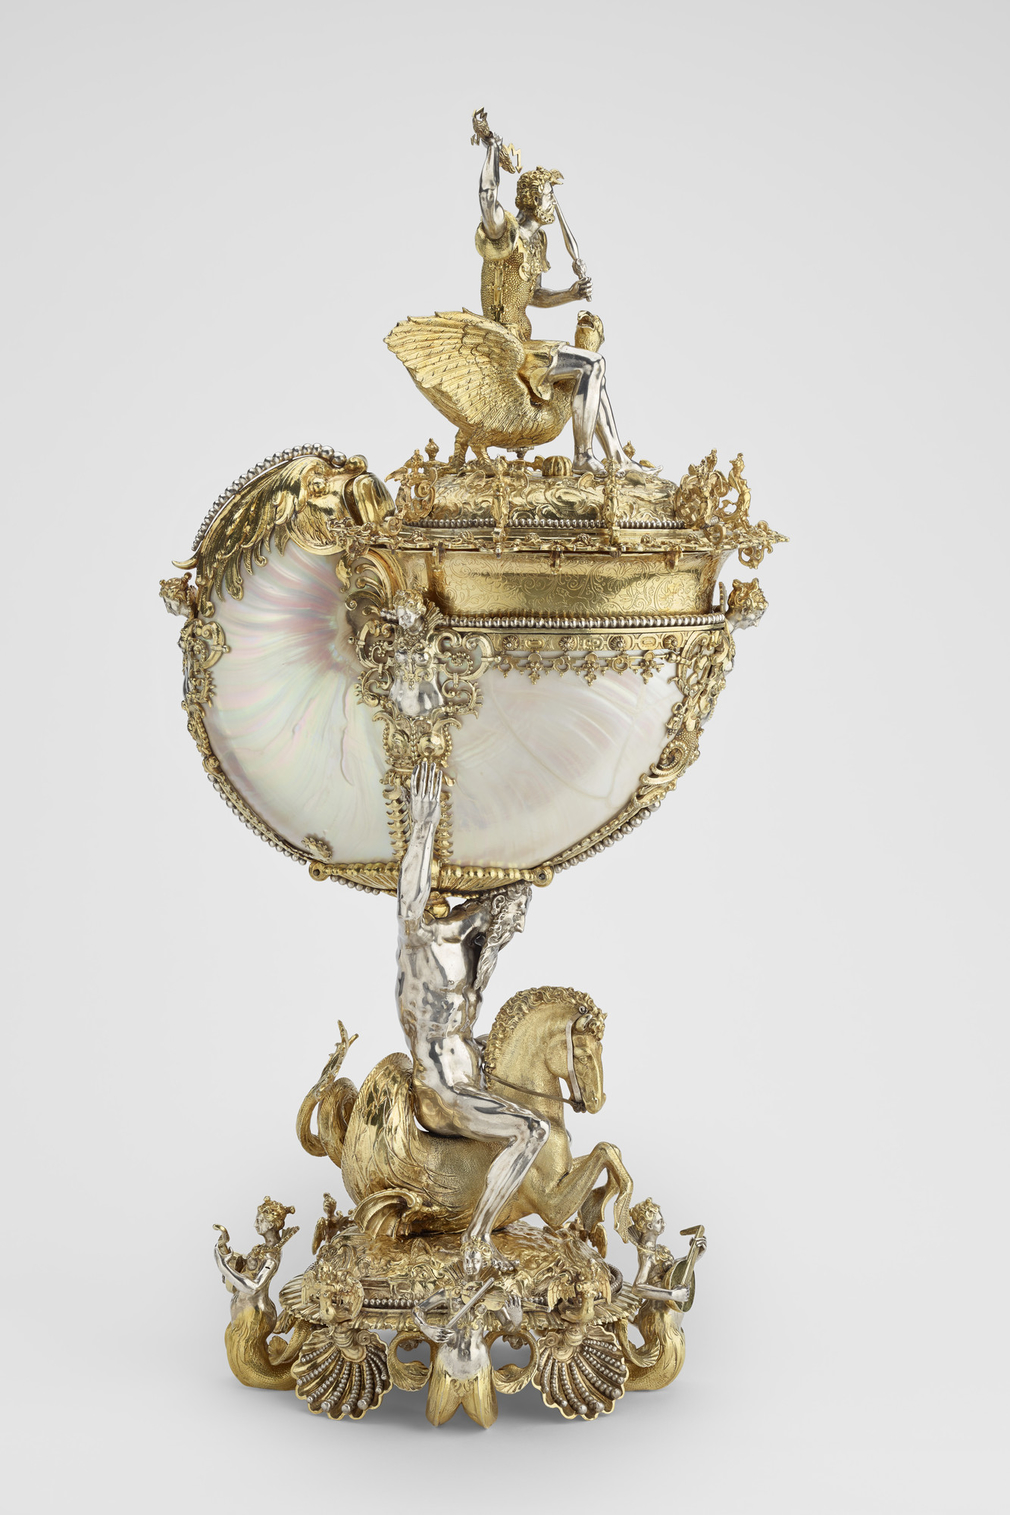 This spectacular <em>Kunstkammer</em> object is one of the finest examples of antiquarian plate acquired by George IV. On its arrival in 1823, it joined a growing collection of virtuoso sideboard cups of varying dates and nationalities. <br>  <br>Although